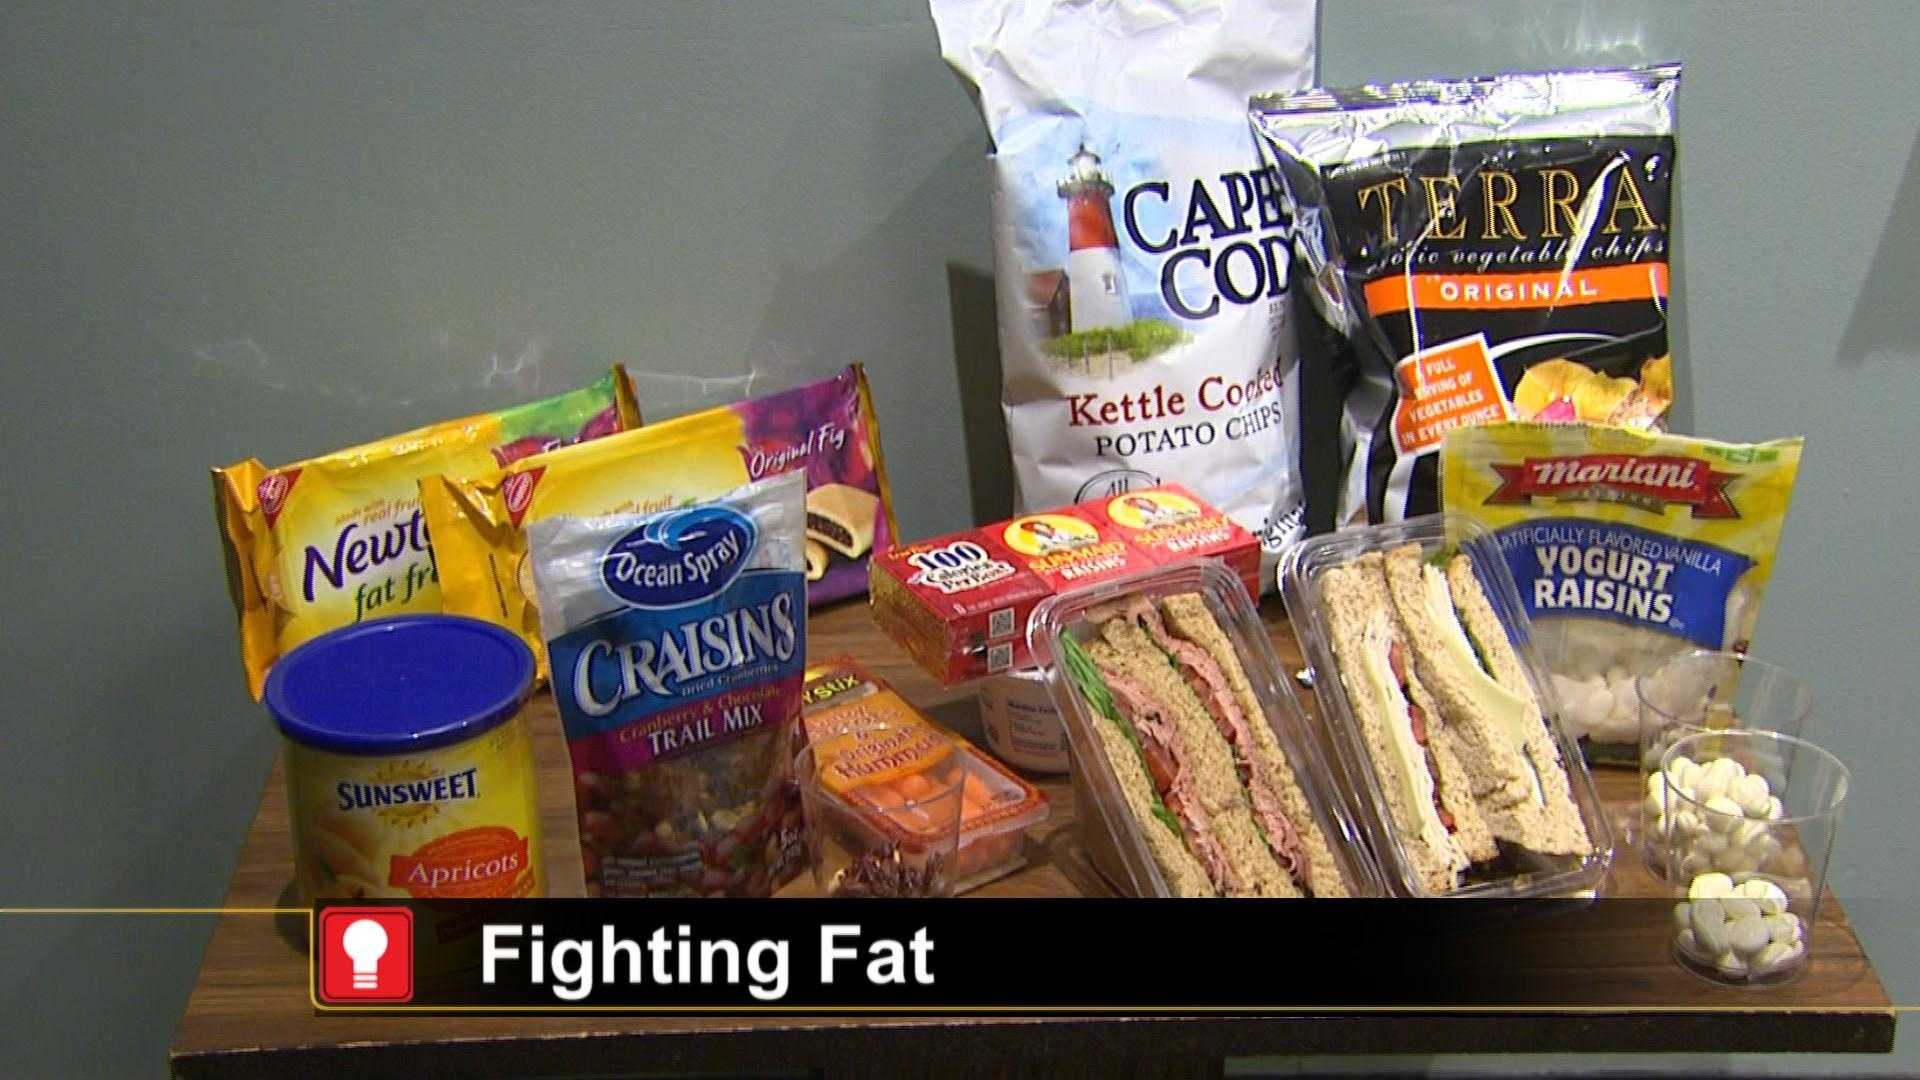 Image: Fighting Fat